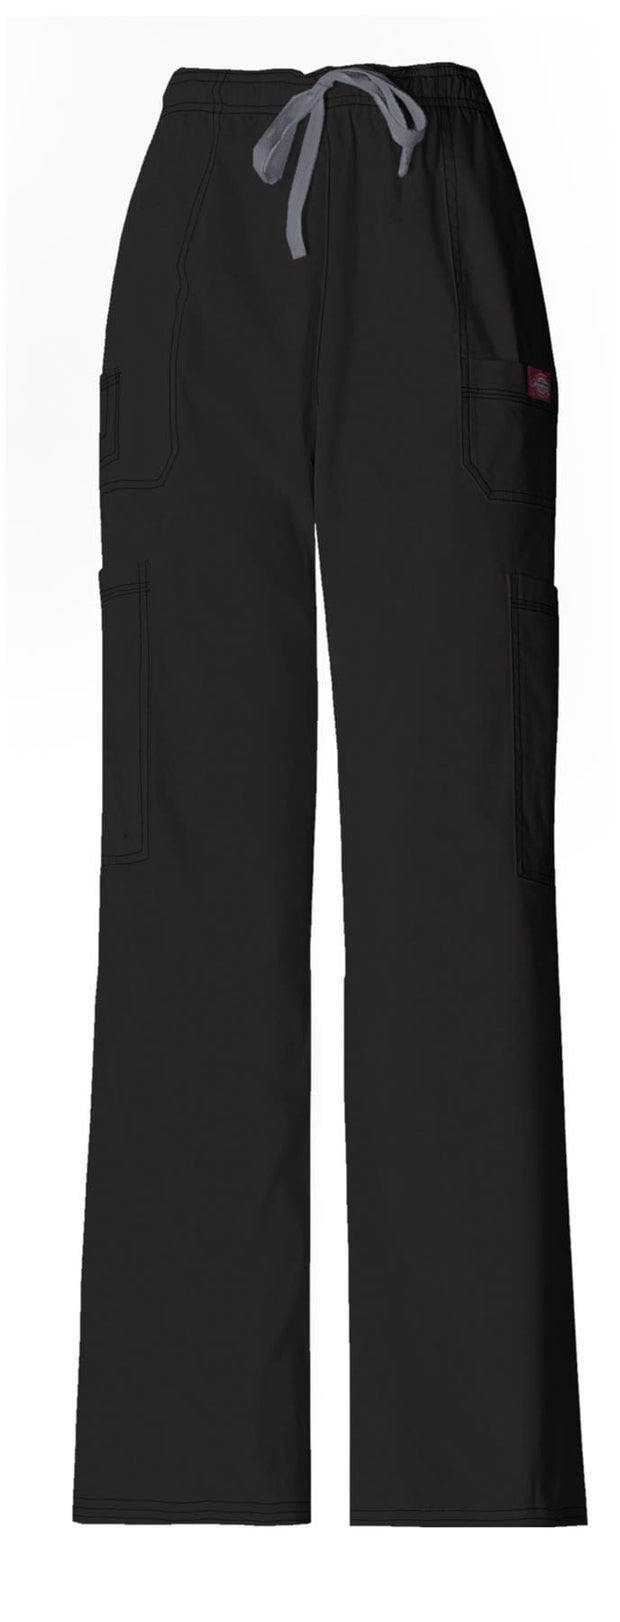 81003T<br> Men's Drawstring Cargo Pant (Tall)